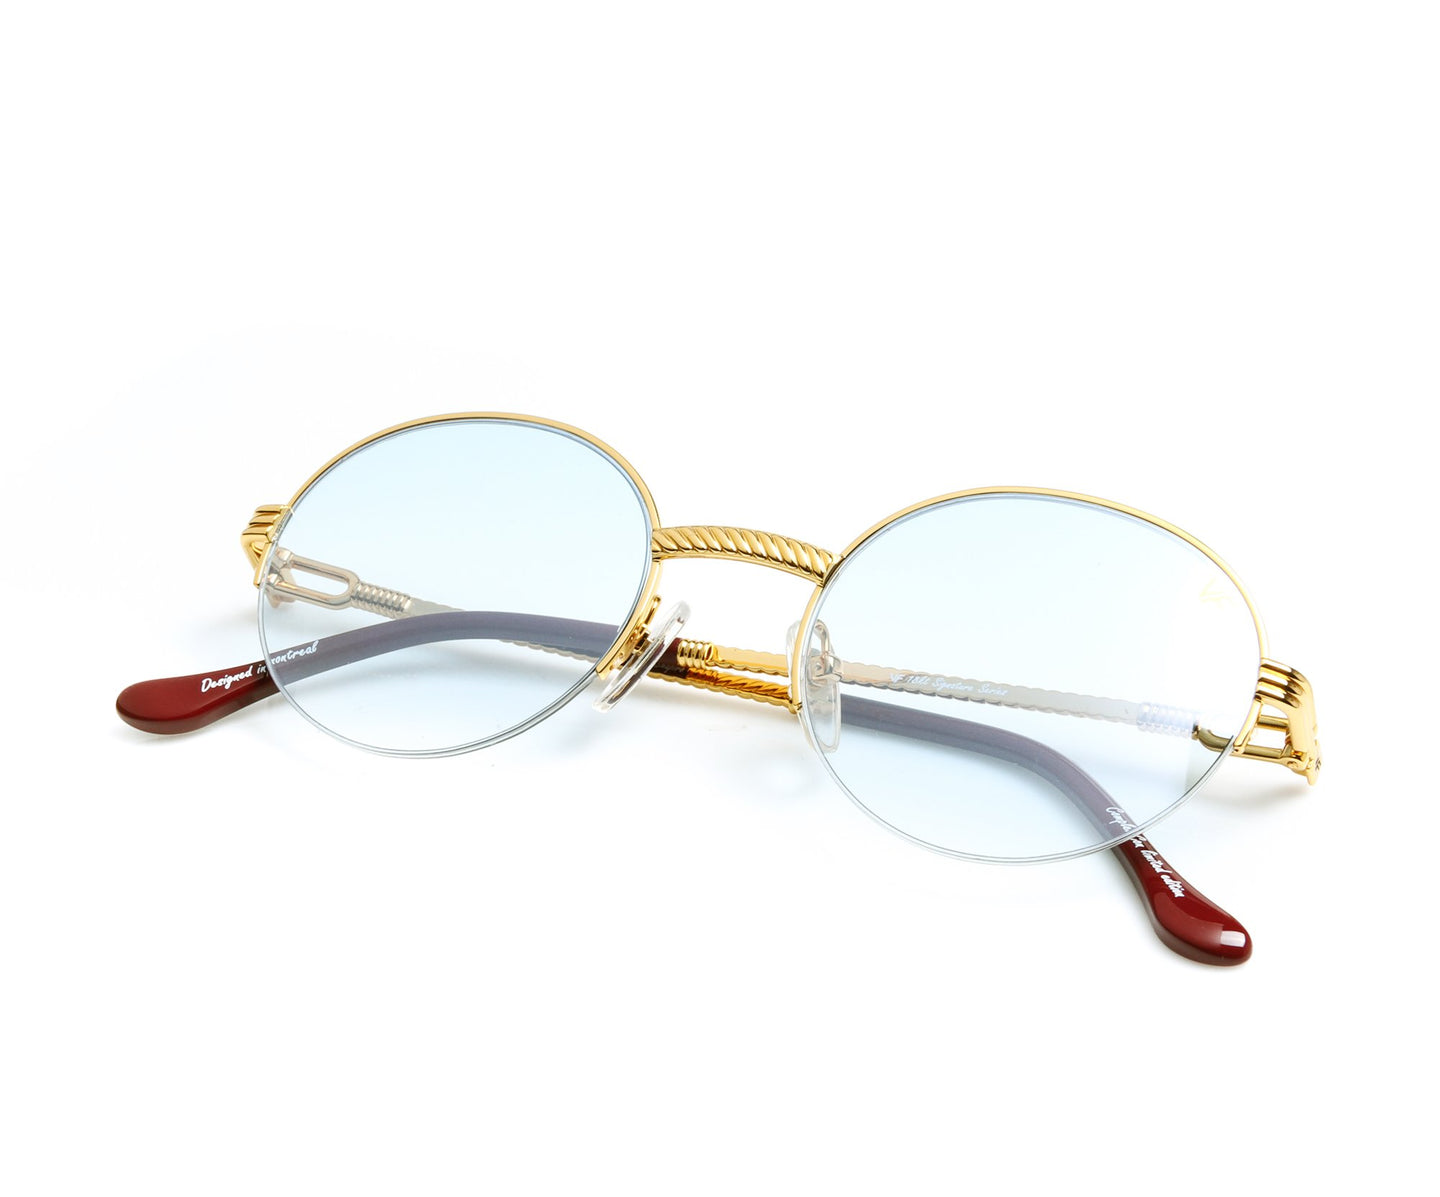 VF 508 Half Rim 18KT Gold (Tiffany Blue) Front, VF by Vintage Frames , glasses frames, eyeglasses online, eyeglass frames, mens glasses, womens glasses, buy glasses online, designer eyeglasses, vintage sunglasses, retro sunglasses, vintage glasses, sunglass, eyeglass, glasses, lens, vintage frames company, vf